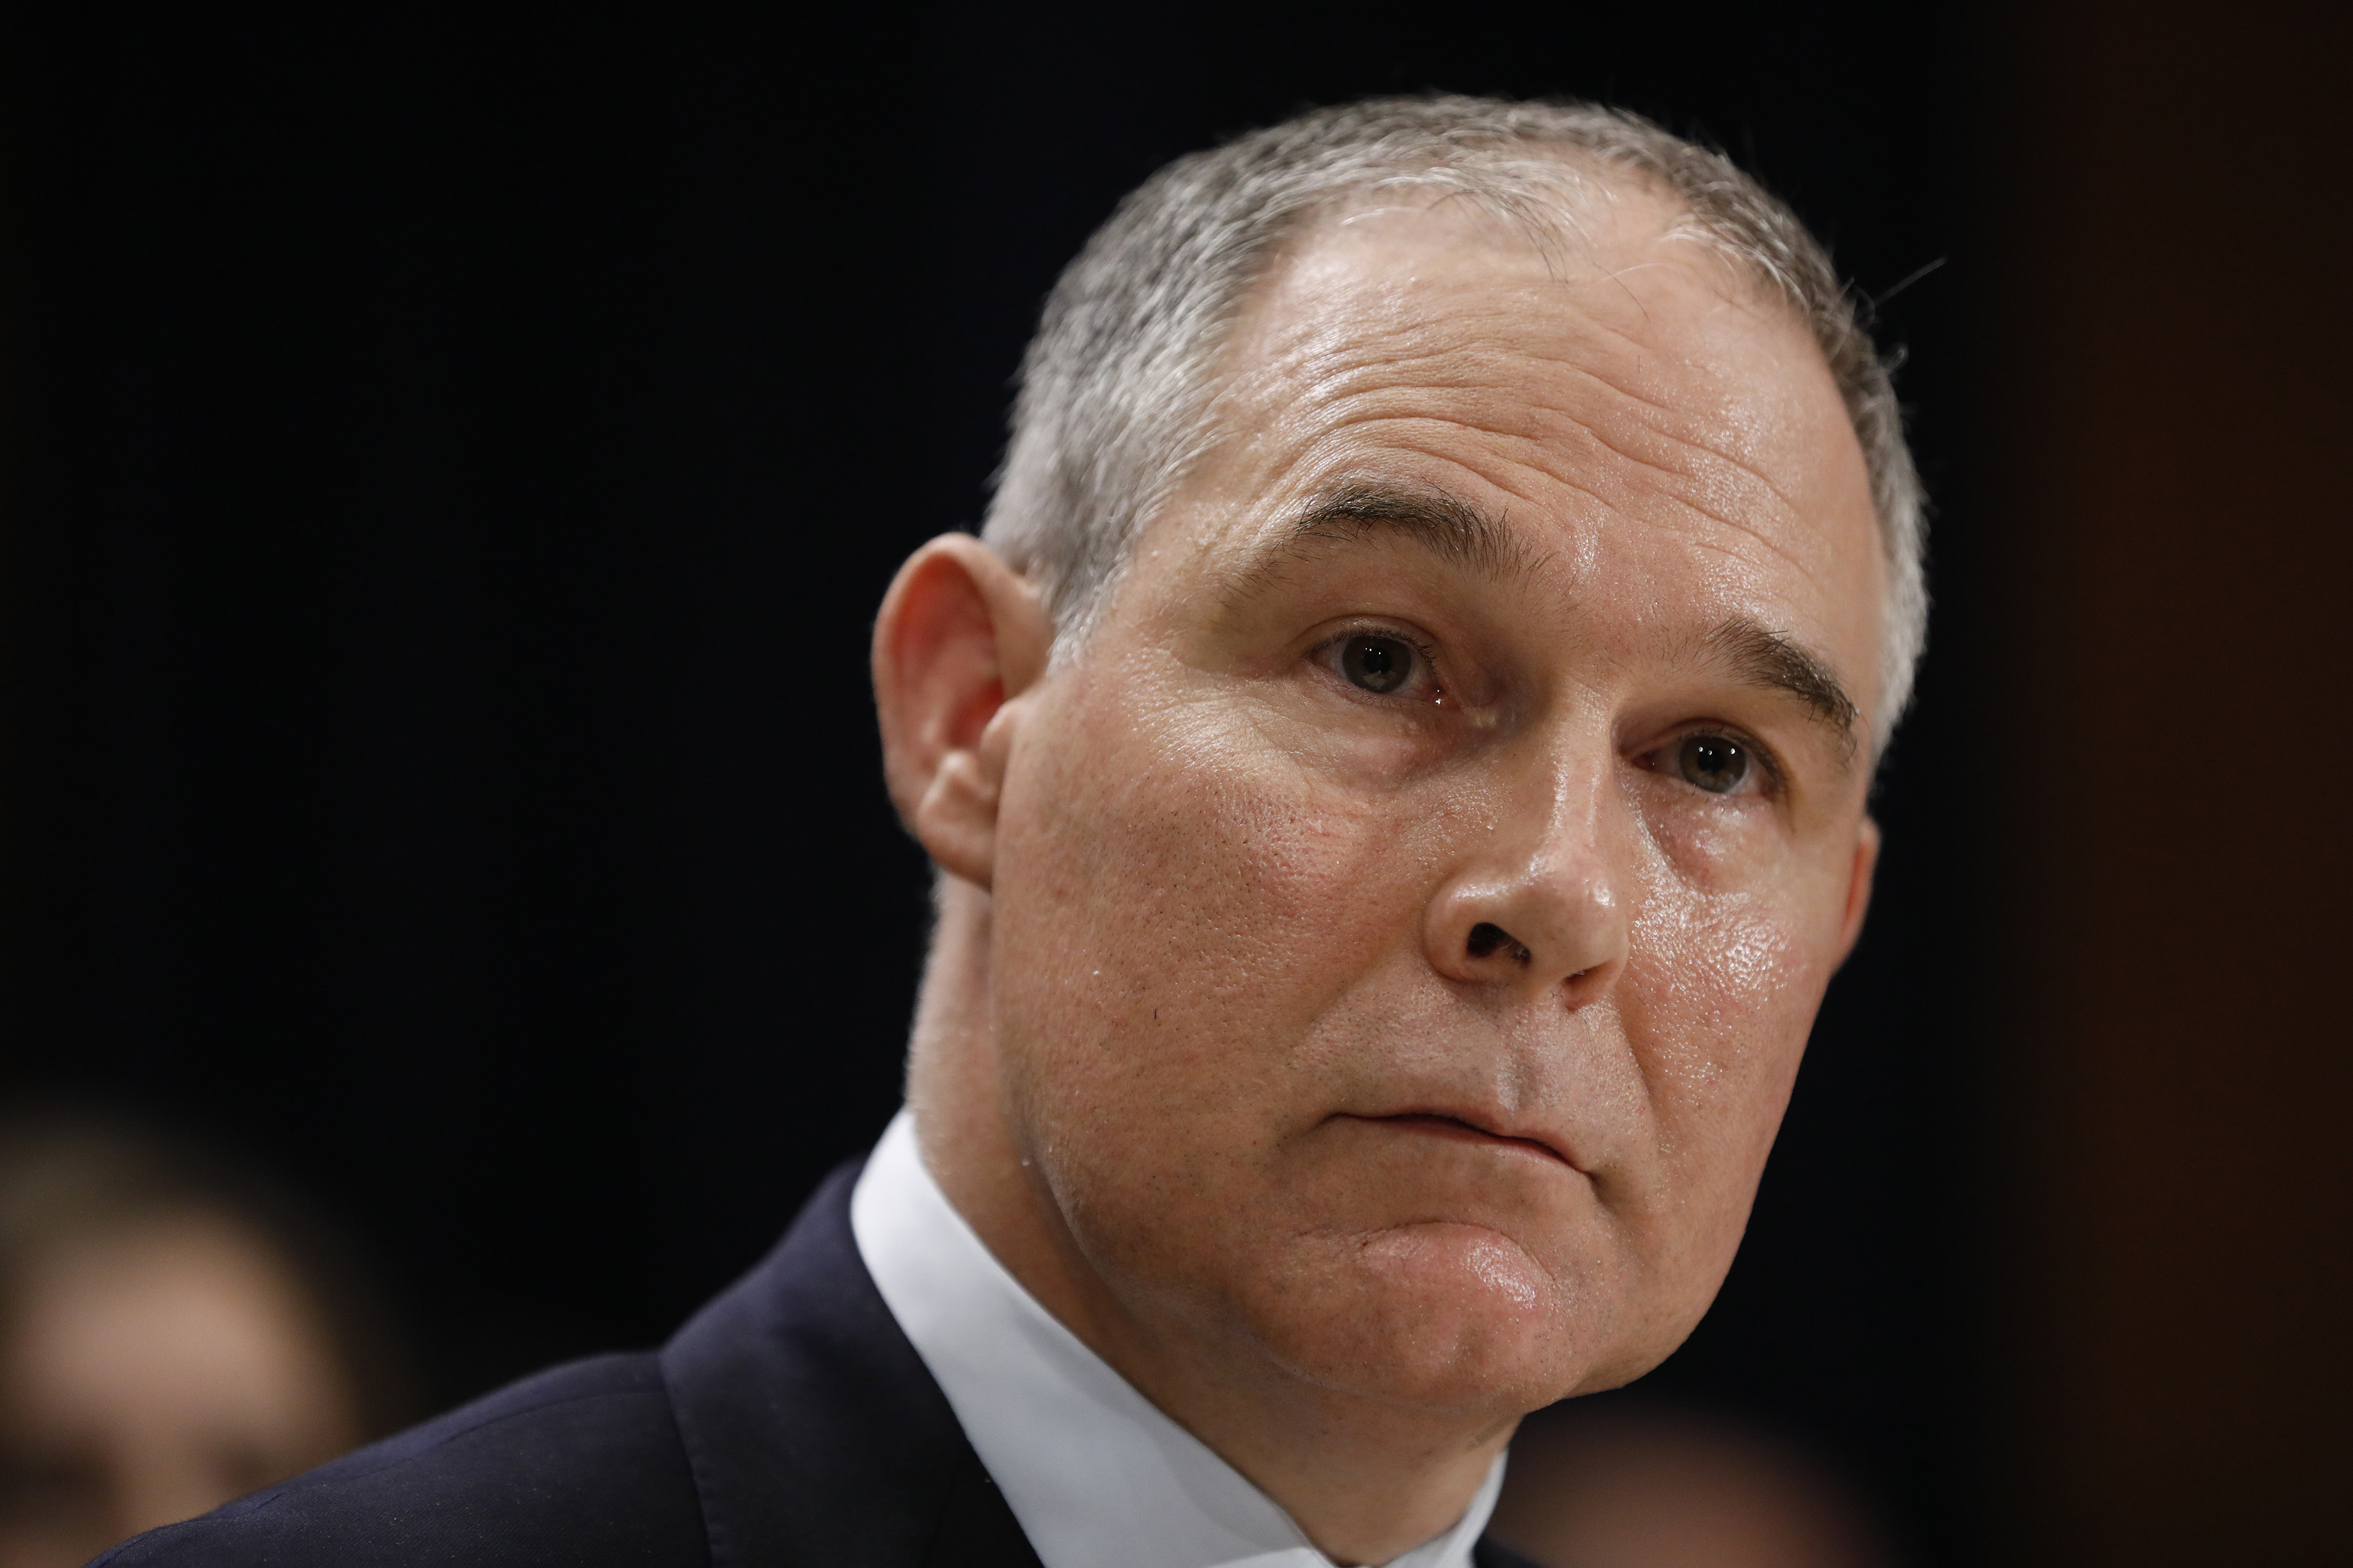 Scott Pruitt testifies during his confirmation hearing for Environmental Protection Agency administrator on January 18, 2017.